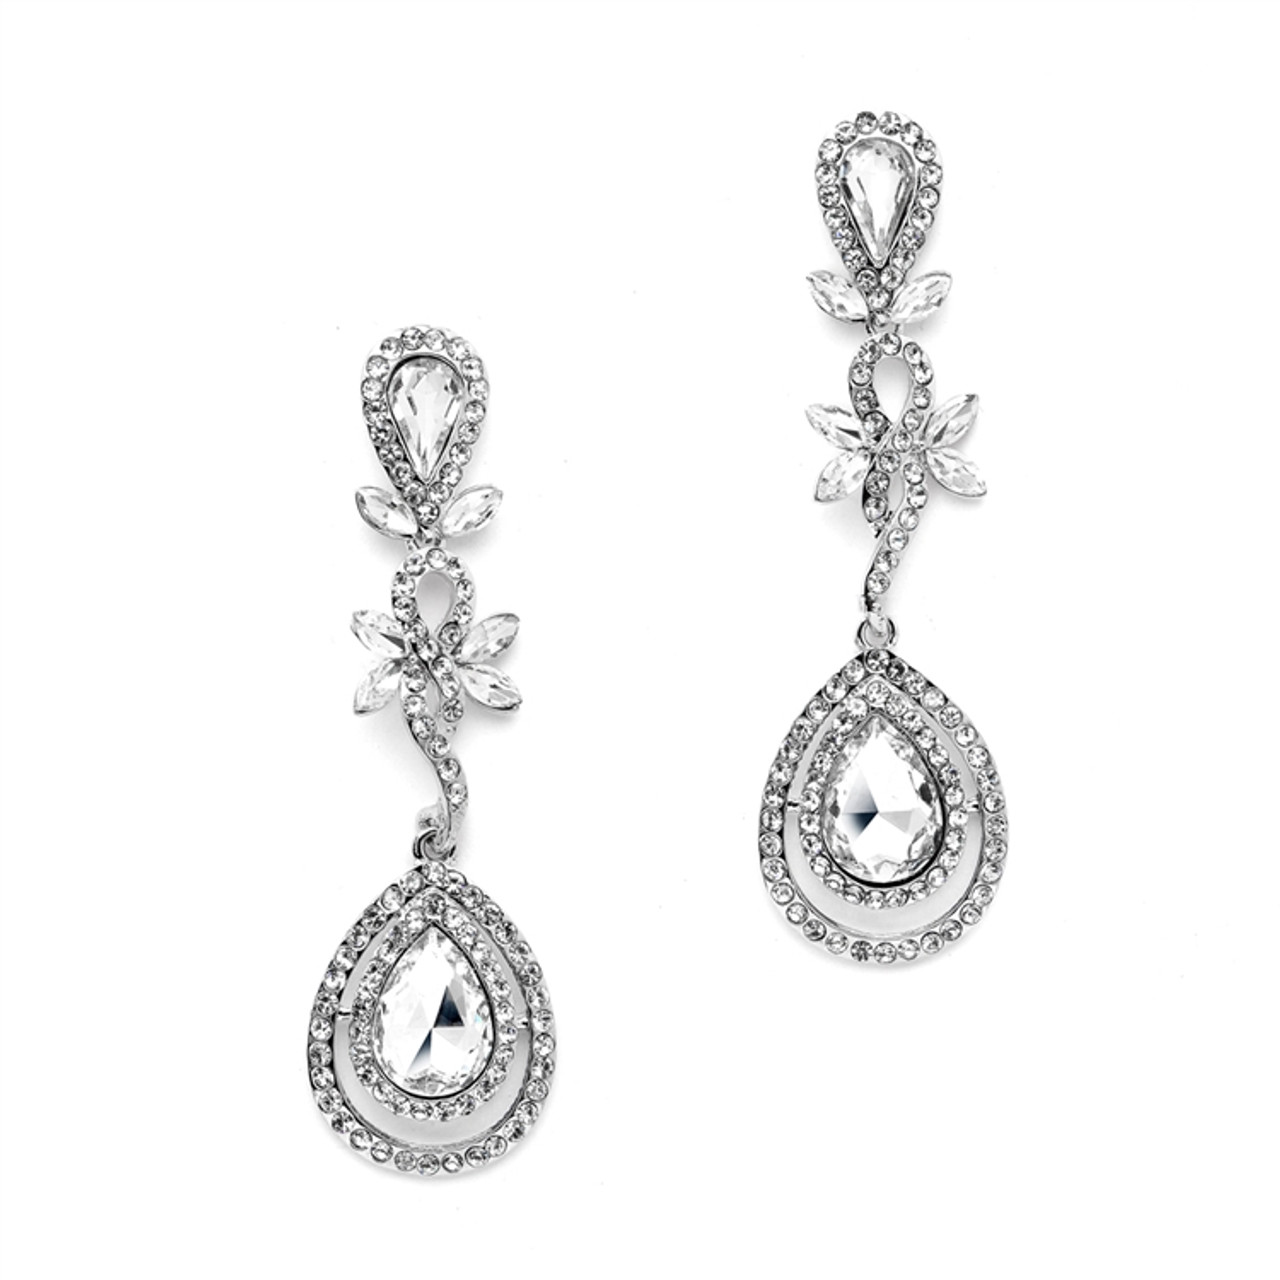 Mariell Abstract Statement Earrings with Framed Pears and Petals  4539E-CR-S